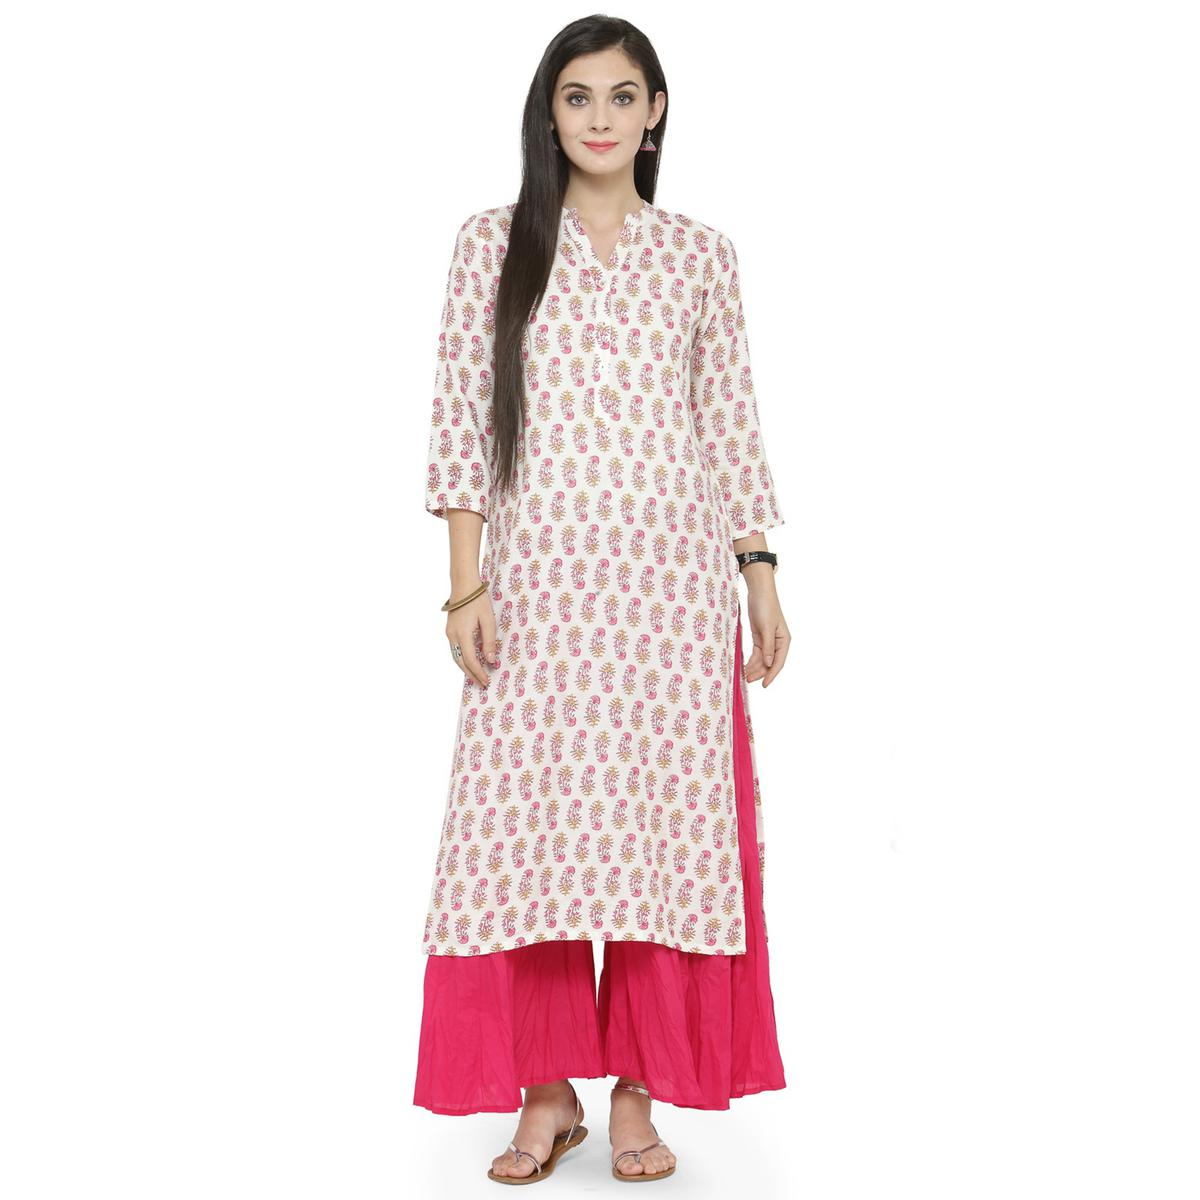 Off-White Colored Printed Rayon Kurti